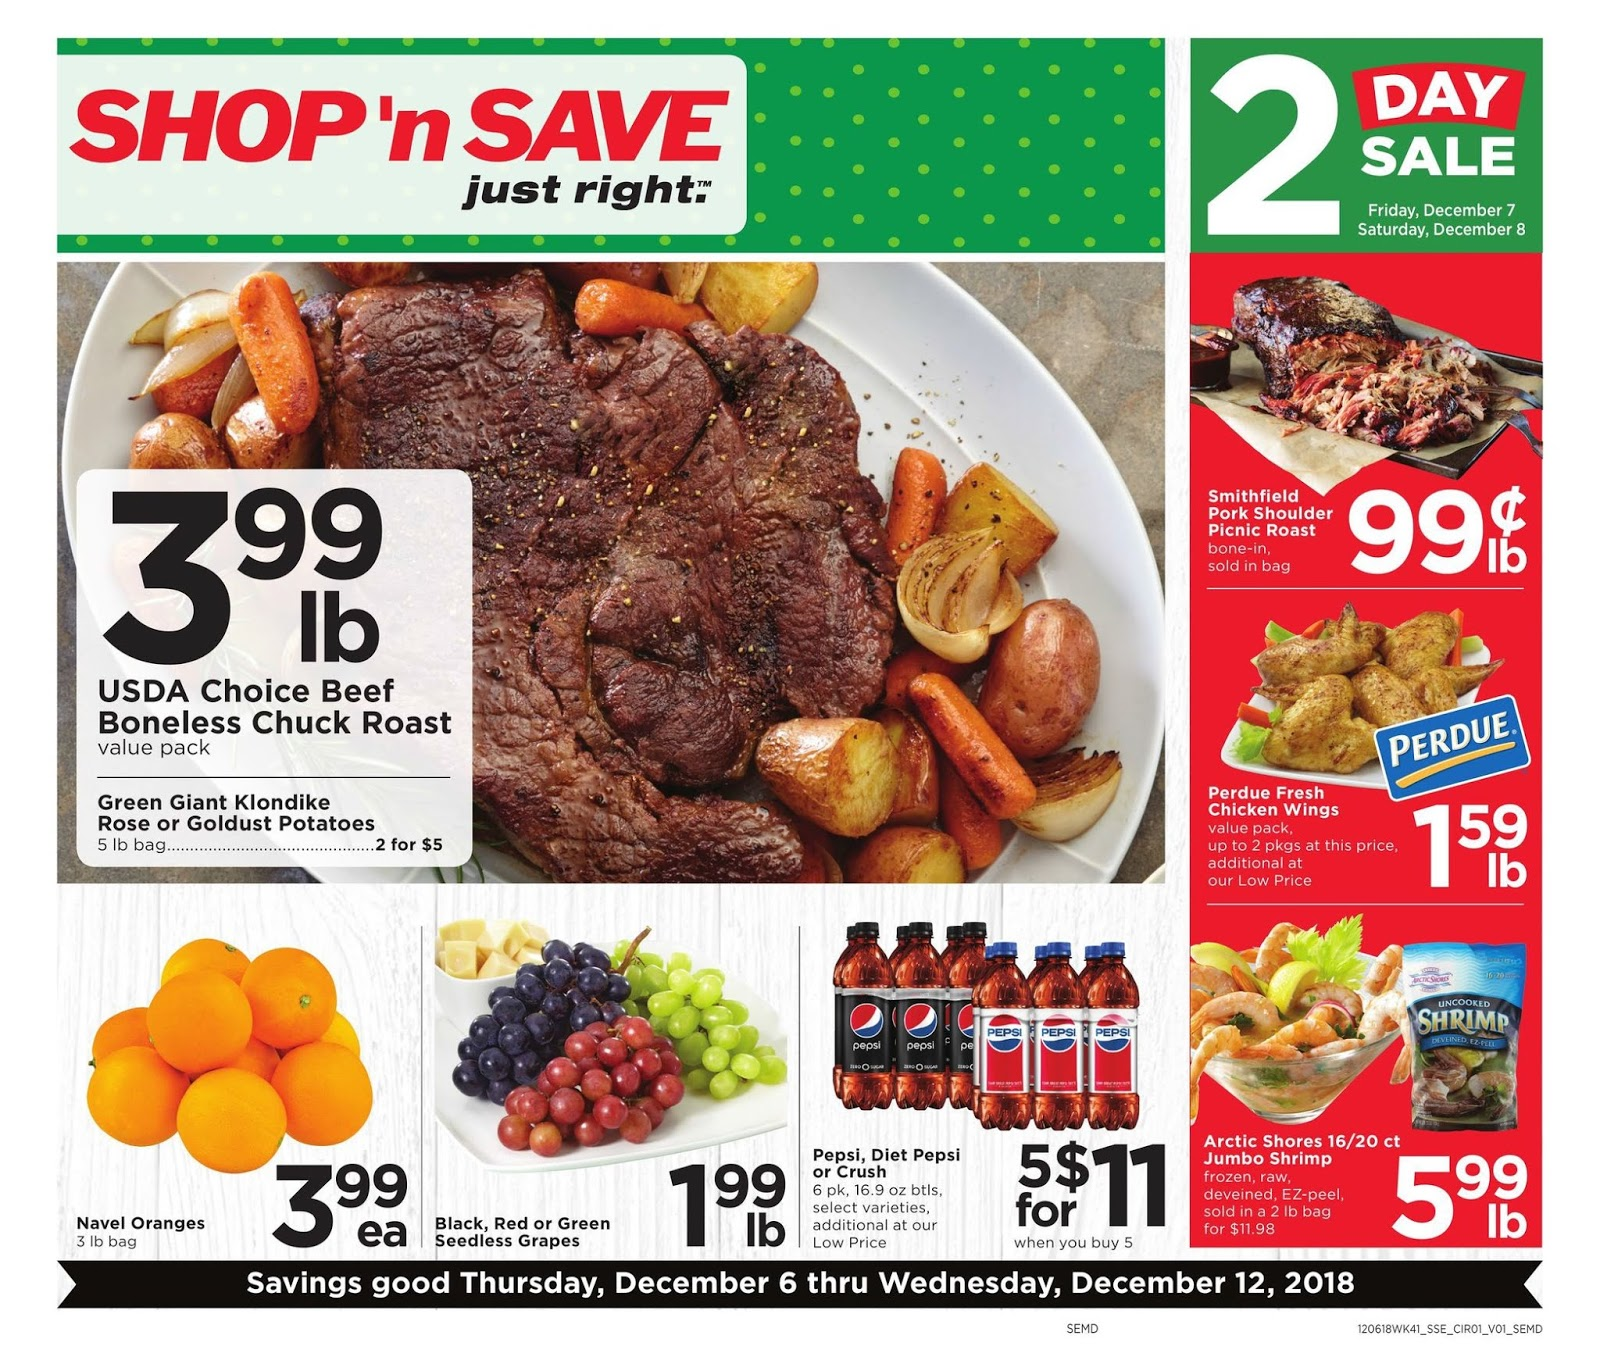 N Save Weekly Ad Preview 12 6 18